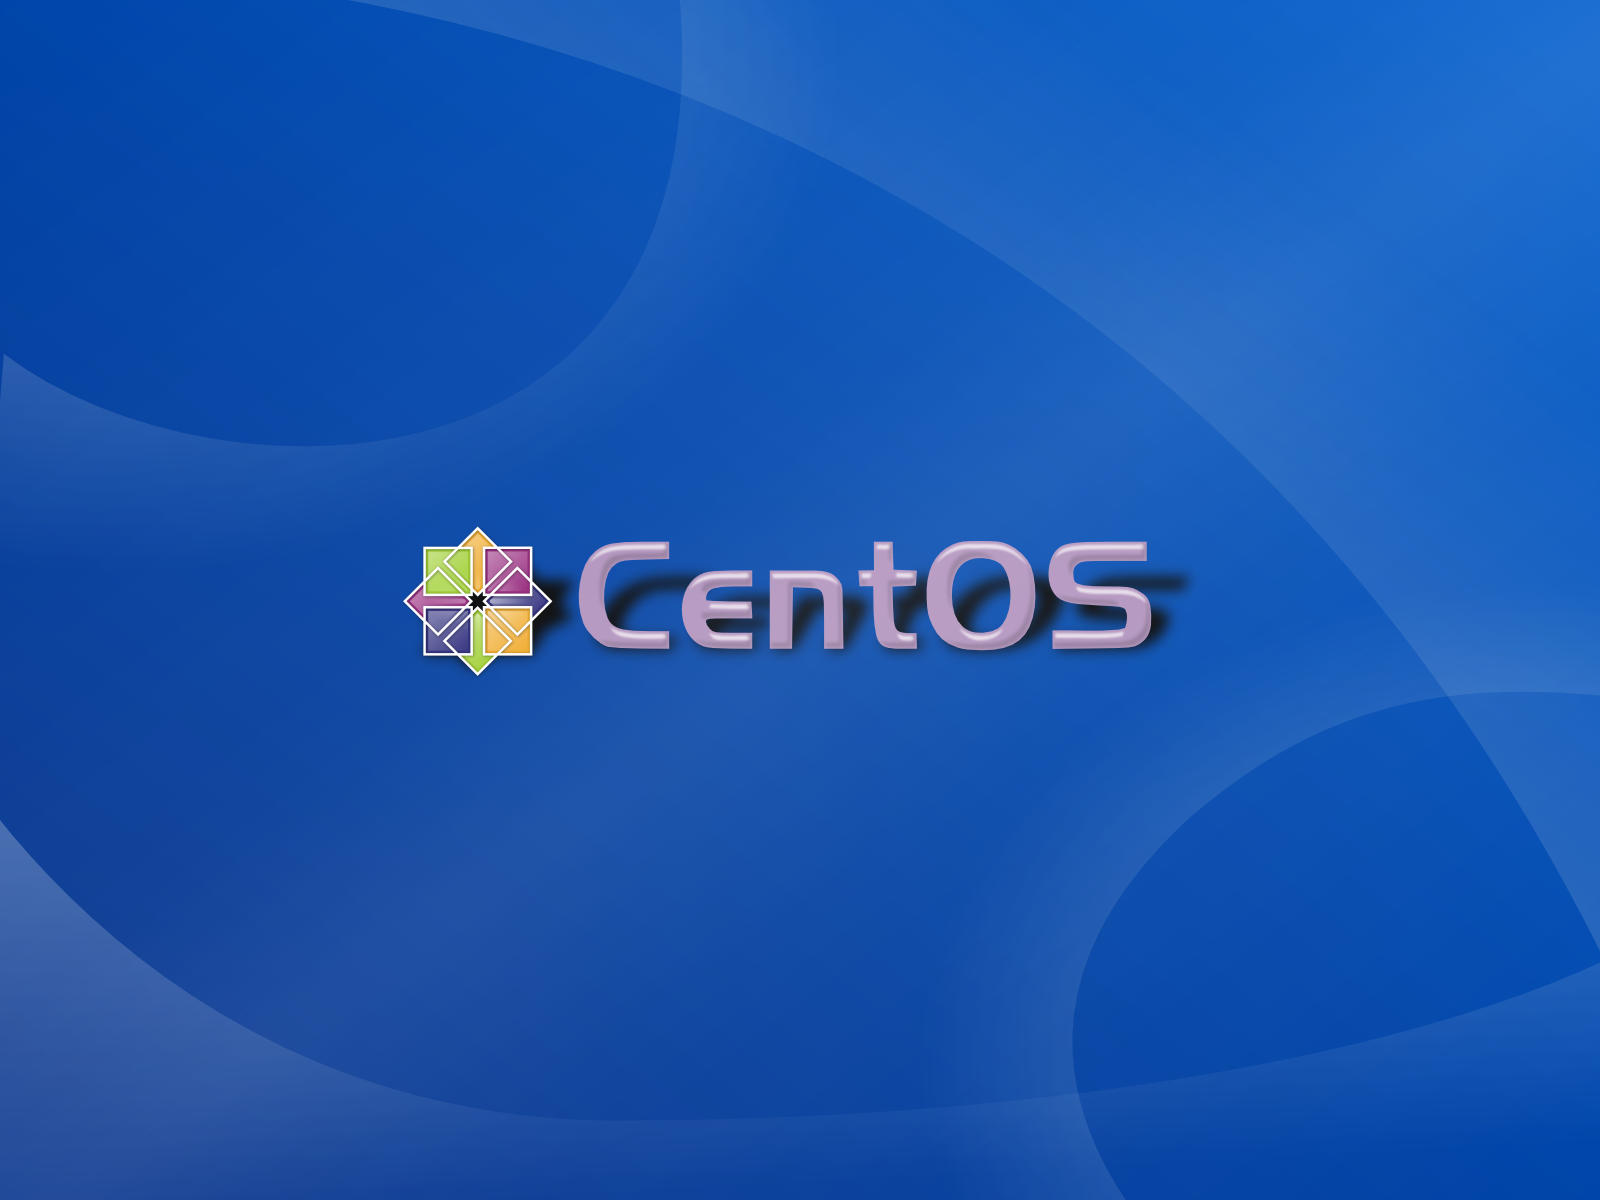 Centos Graphics And Artwork